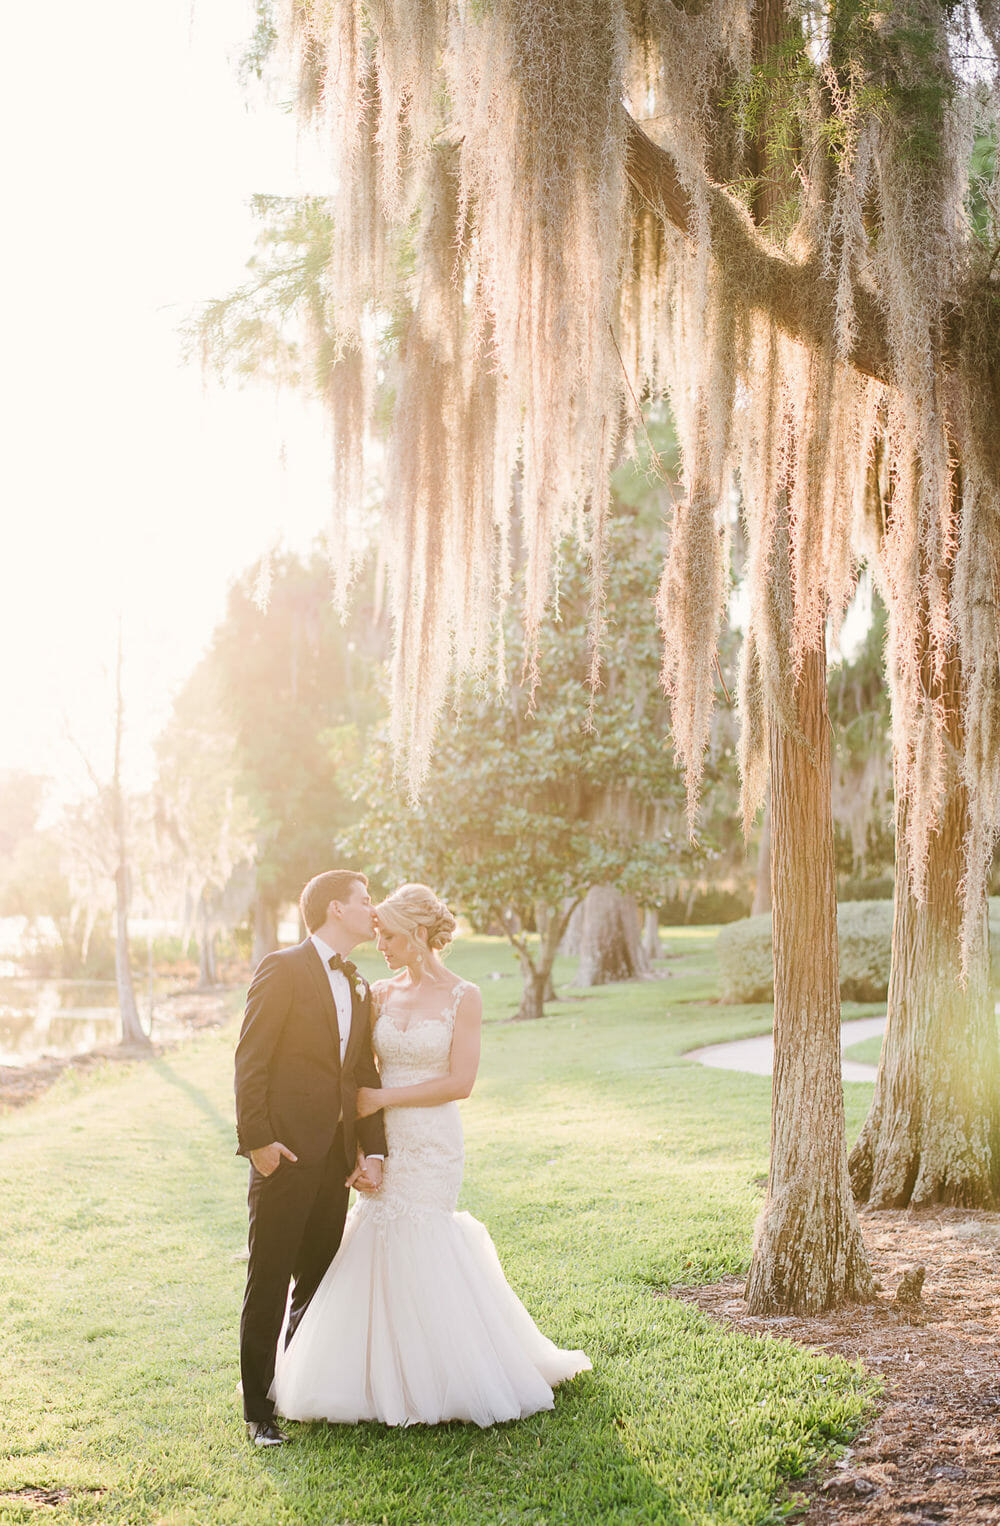 Cypress+Grove+Estate+House+Wedding+Orlando+Florida+Sunglow+Photography_0039